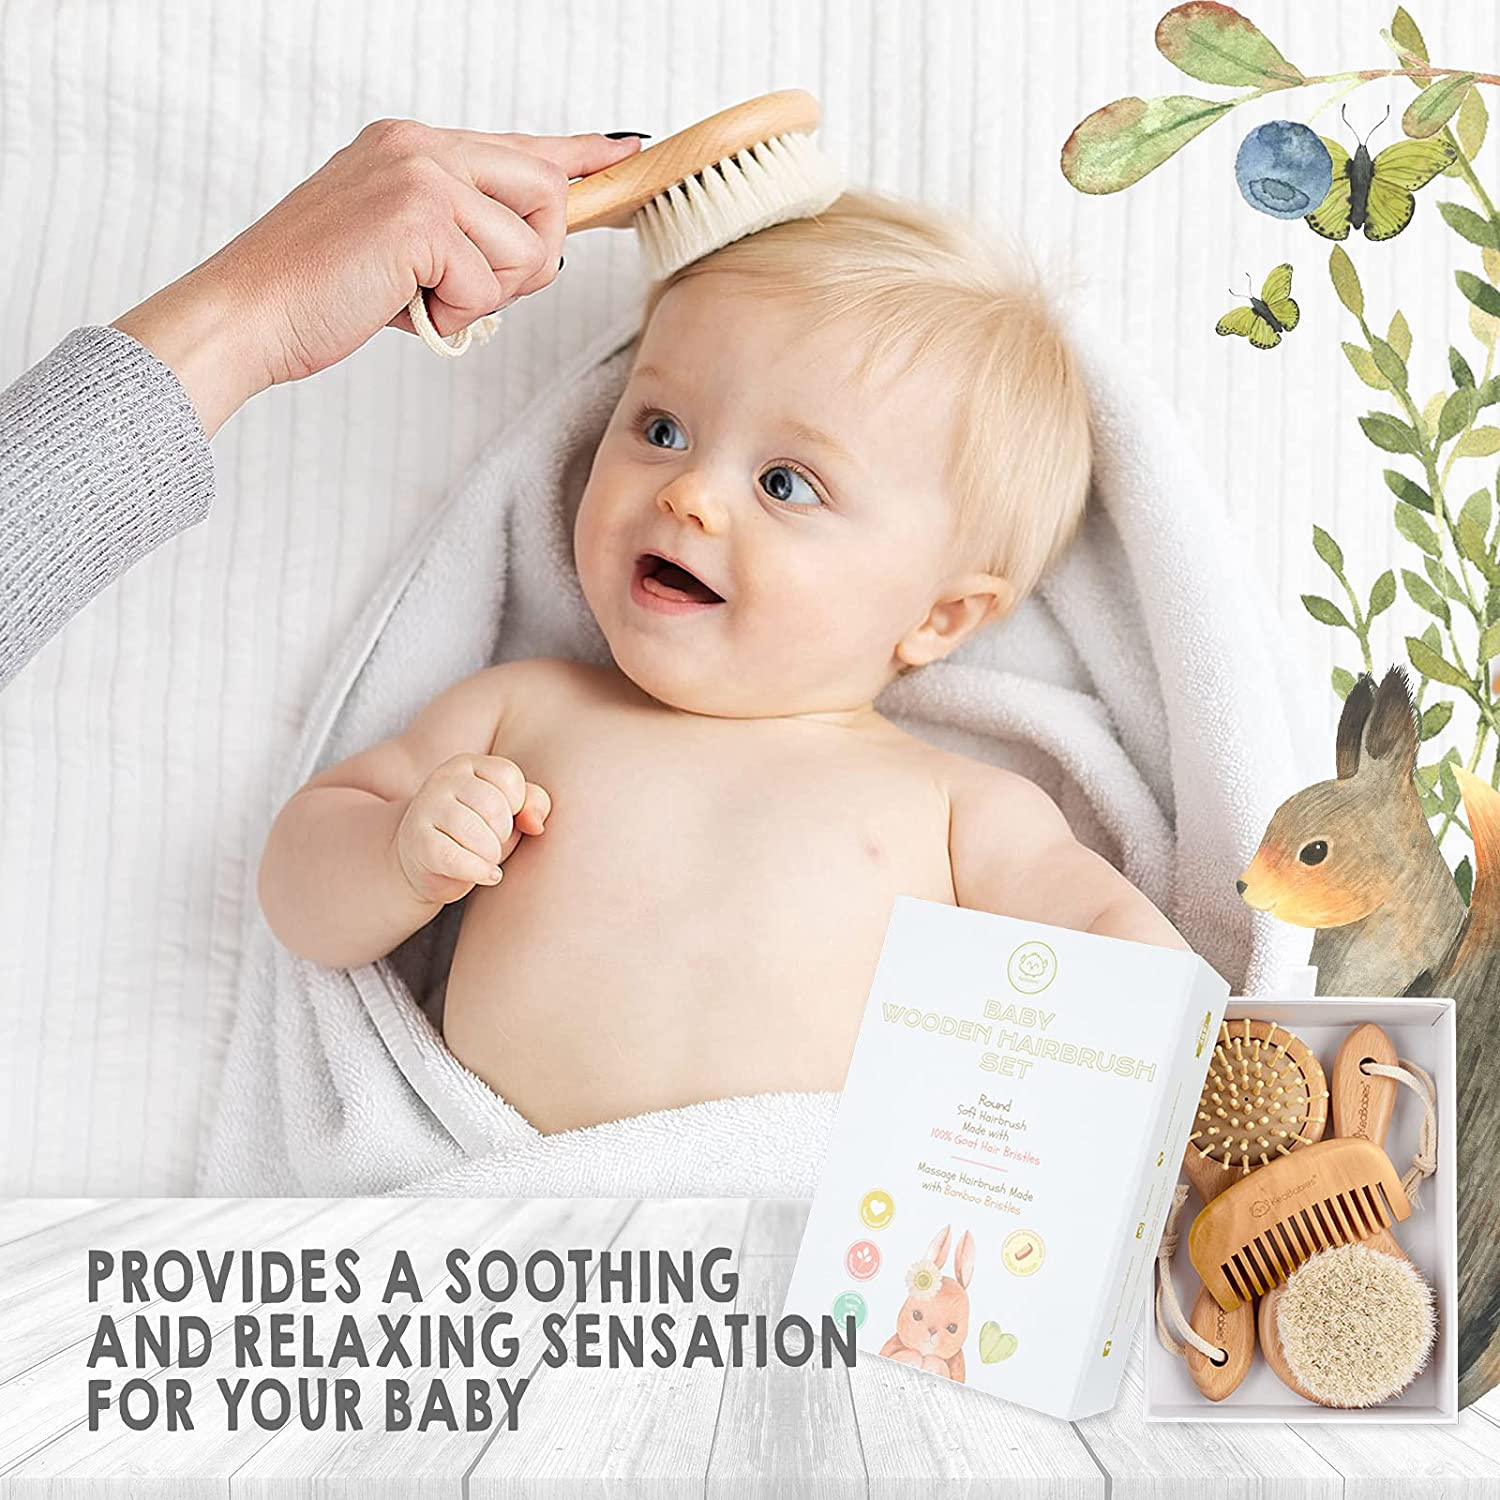 Baby Round Hair Brush and Comb Set for Newborn - Natural Wooden Hairbrush with Soft Goat Bristles for Cradle Cap - Perfect Scalp Grooming Product for Infant, Toddler, Kids - Baby Registry Gift